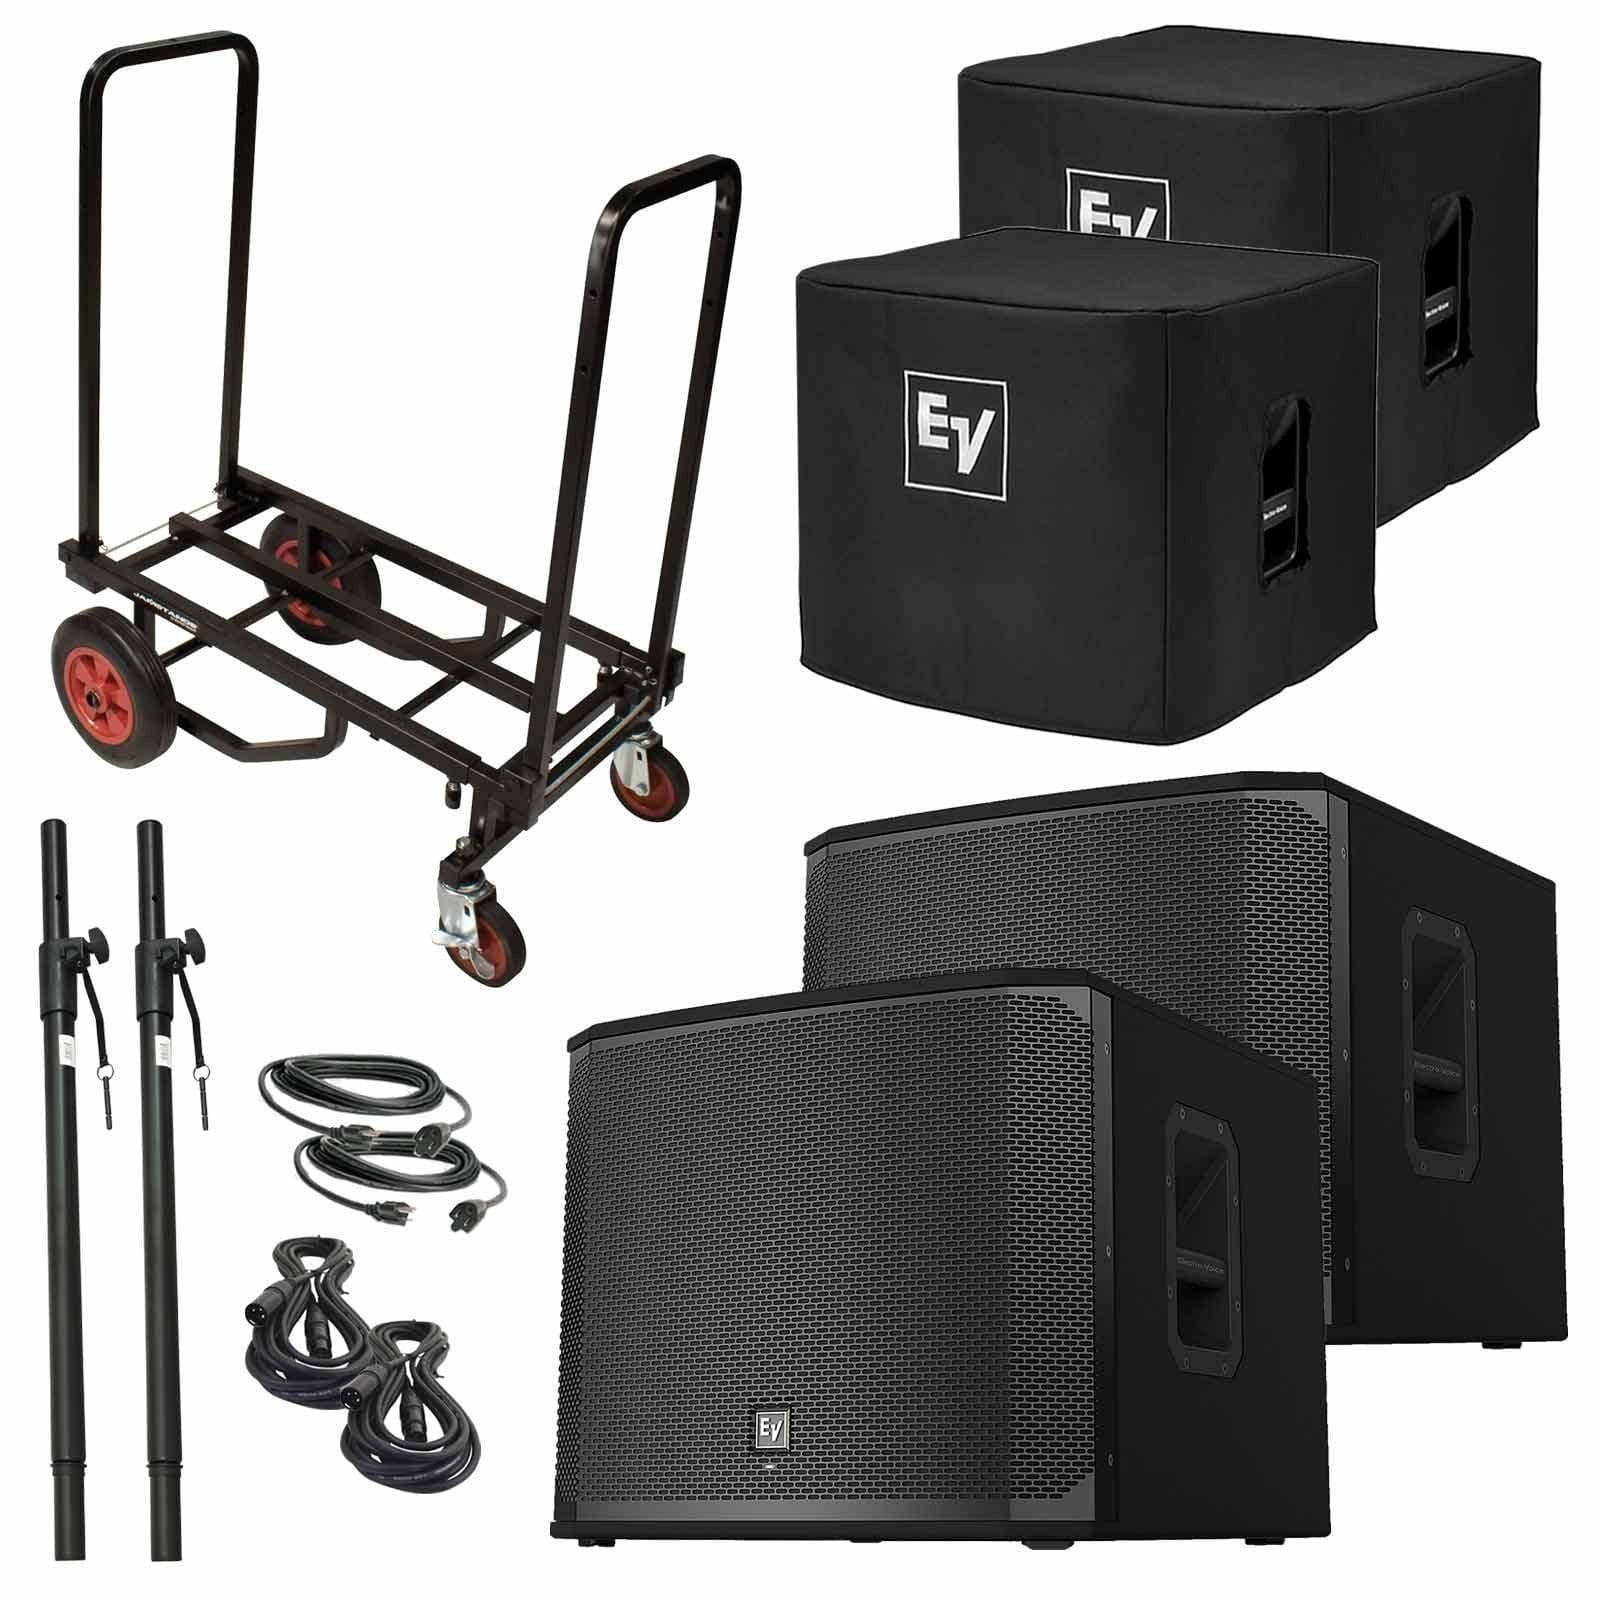 electro-voice-ekx-18sp-18-powered-subwoofer-package-700